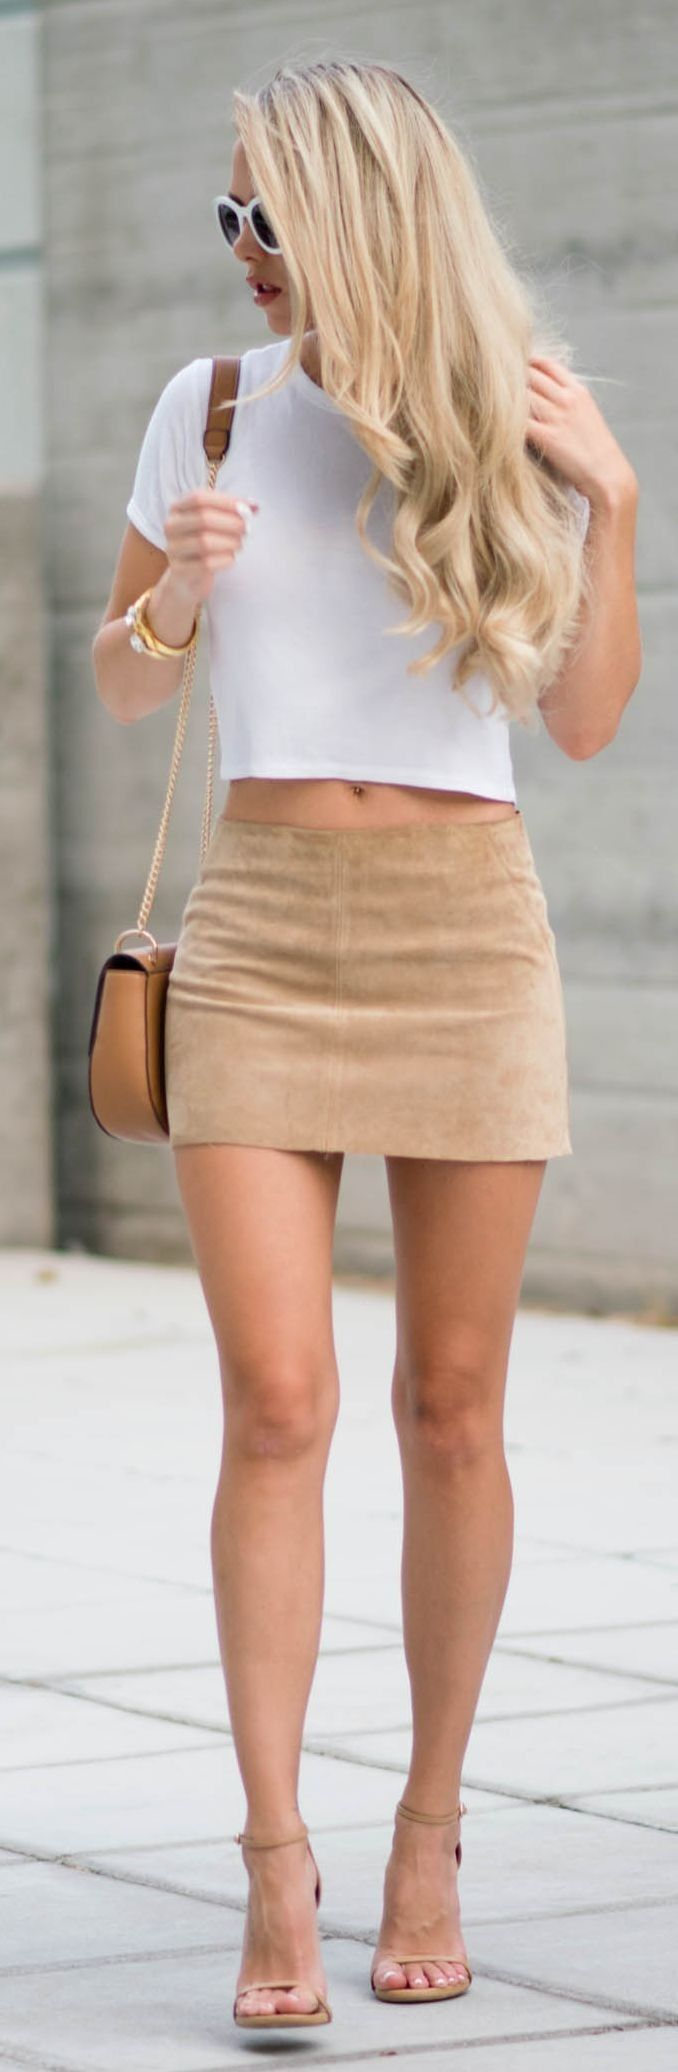 #streetstyle #casualoutfits #spring |White Crop Top + Came Suede Mini Skirt | Kier Couture